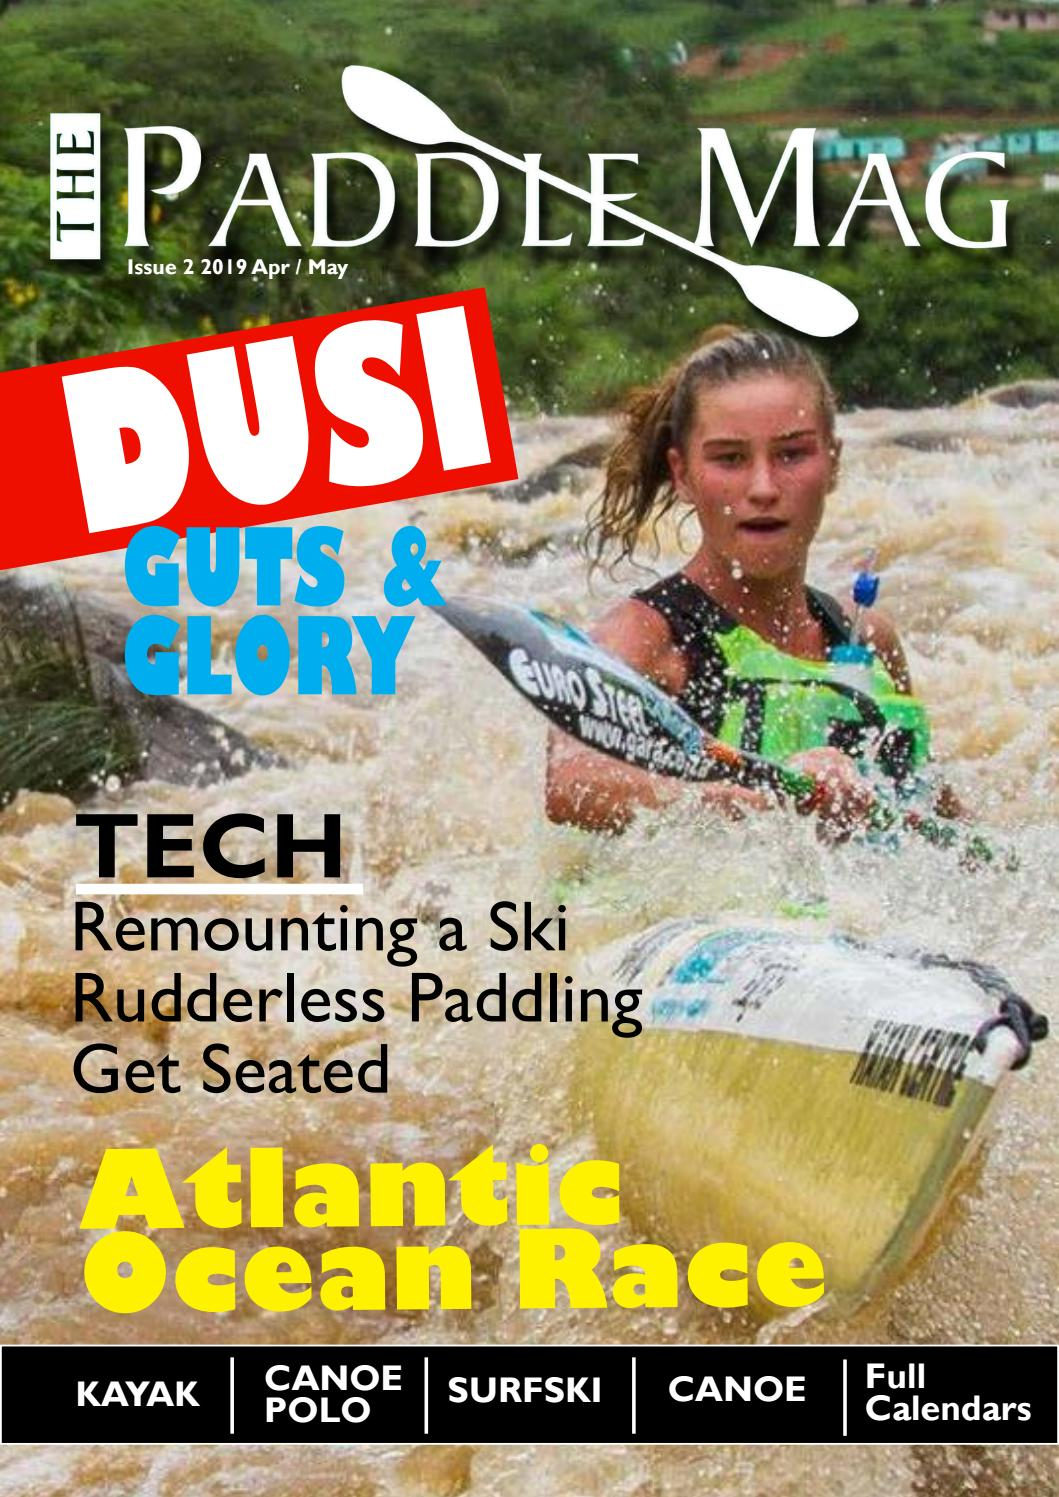 Paddle Mag 2 2019 April/May by The Paddle Mag - issuu